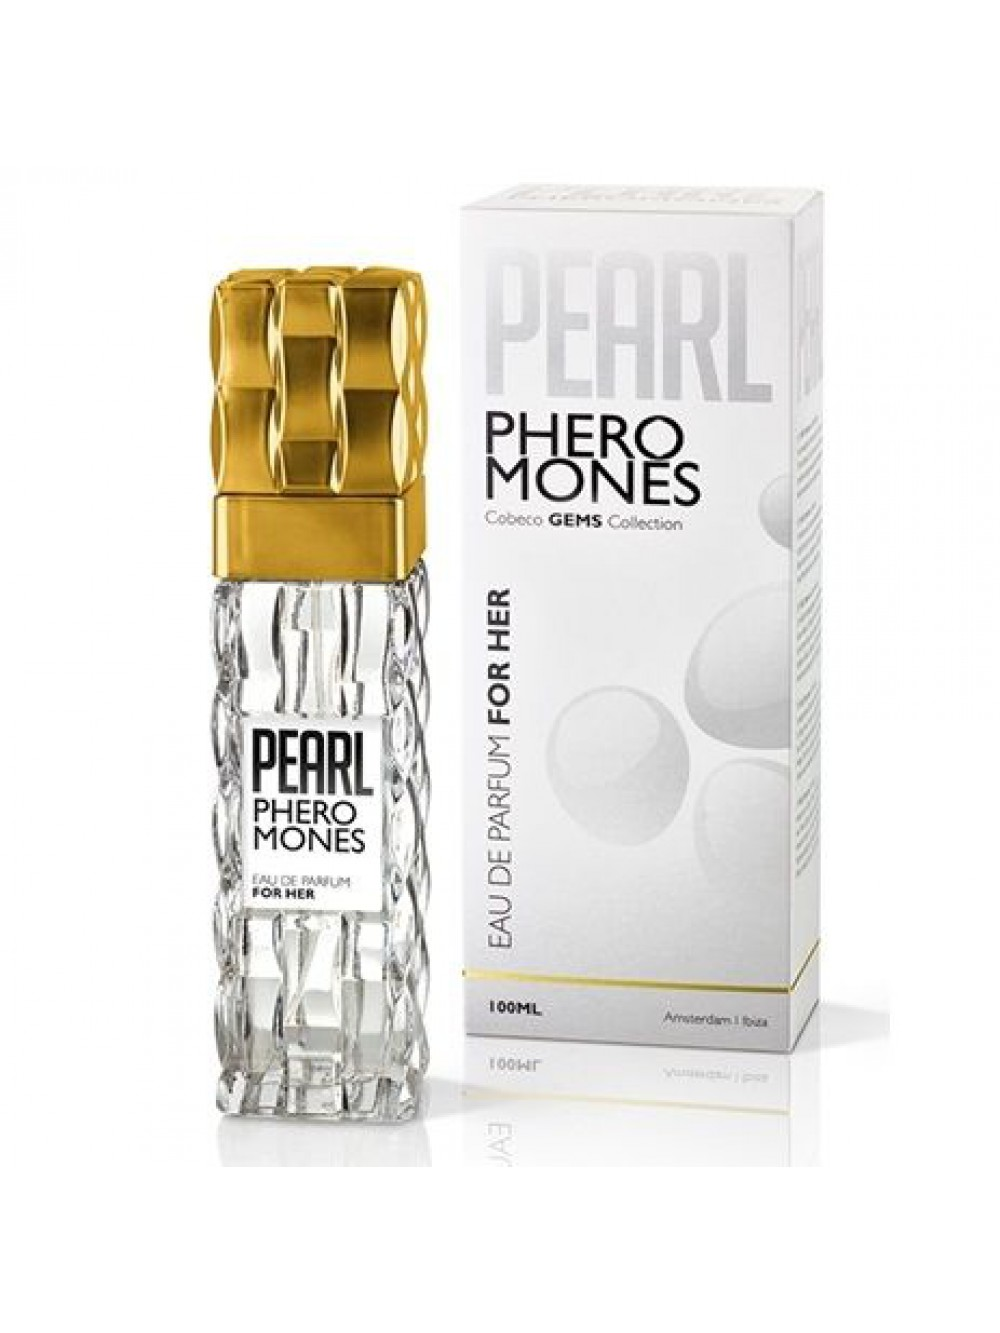 PEARL PHEROMONES EAU DE PARFUM FOR HER  100ML 8718546545627